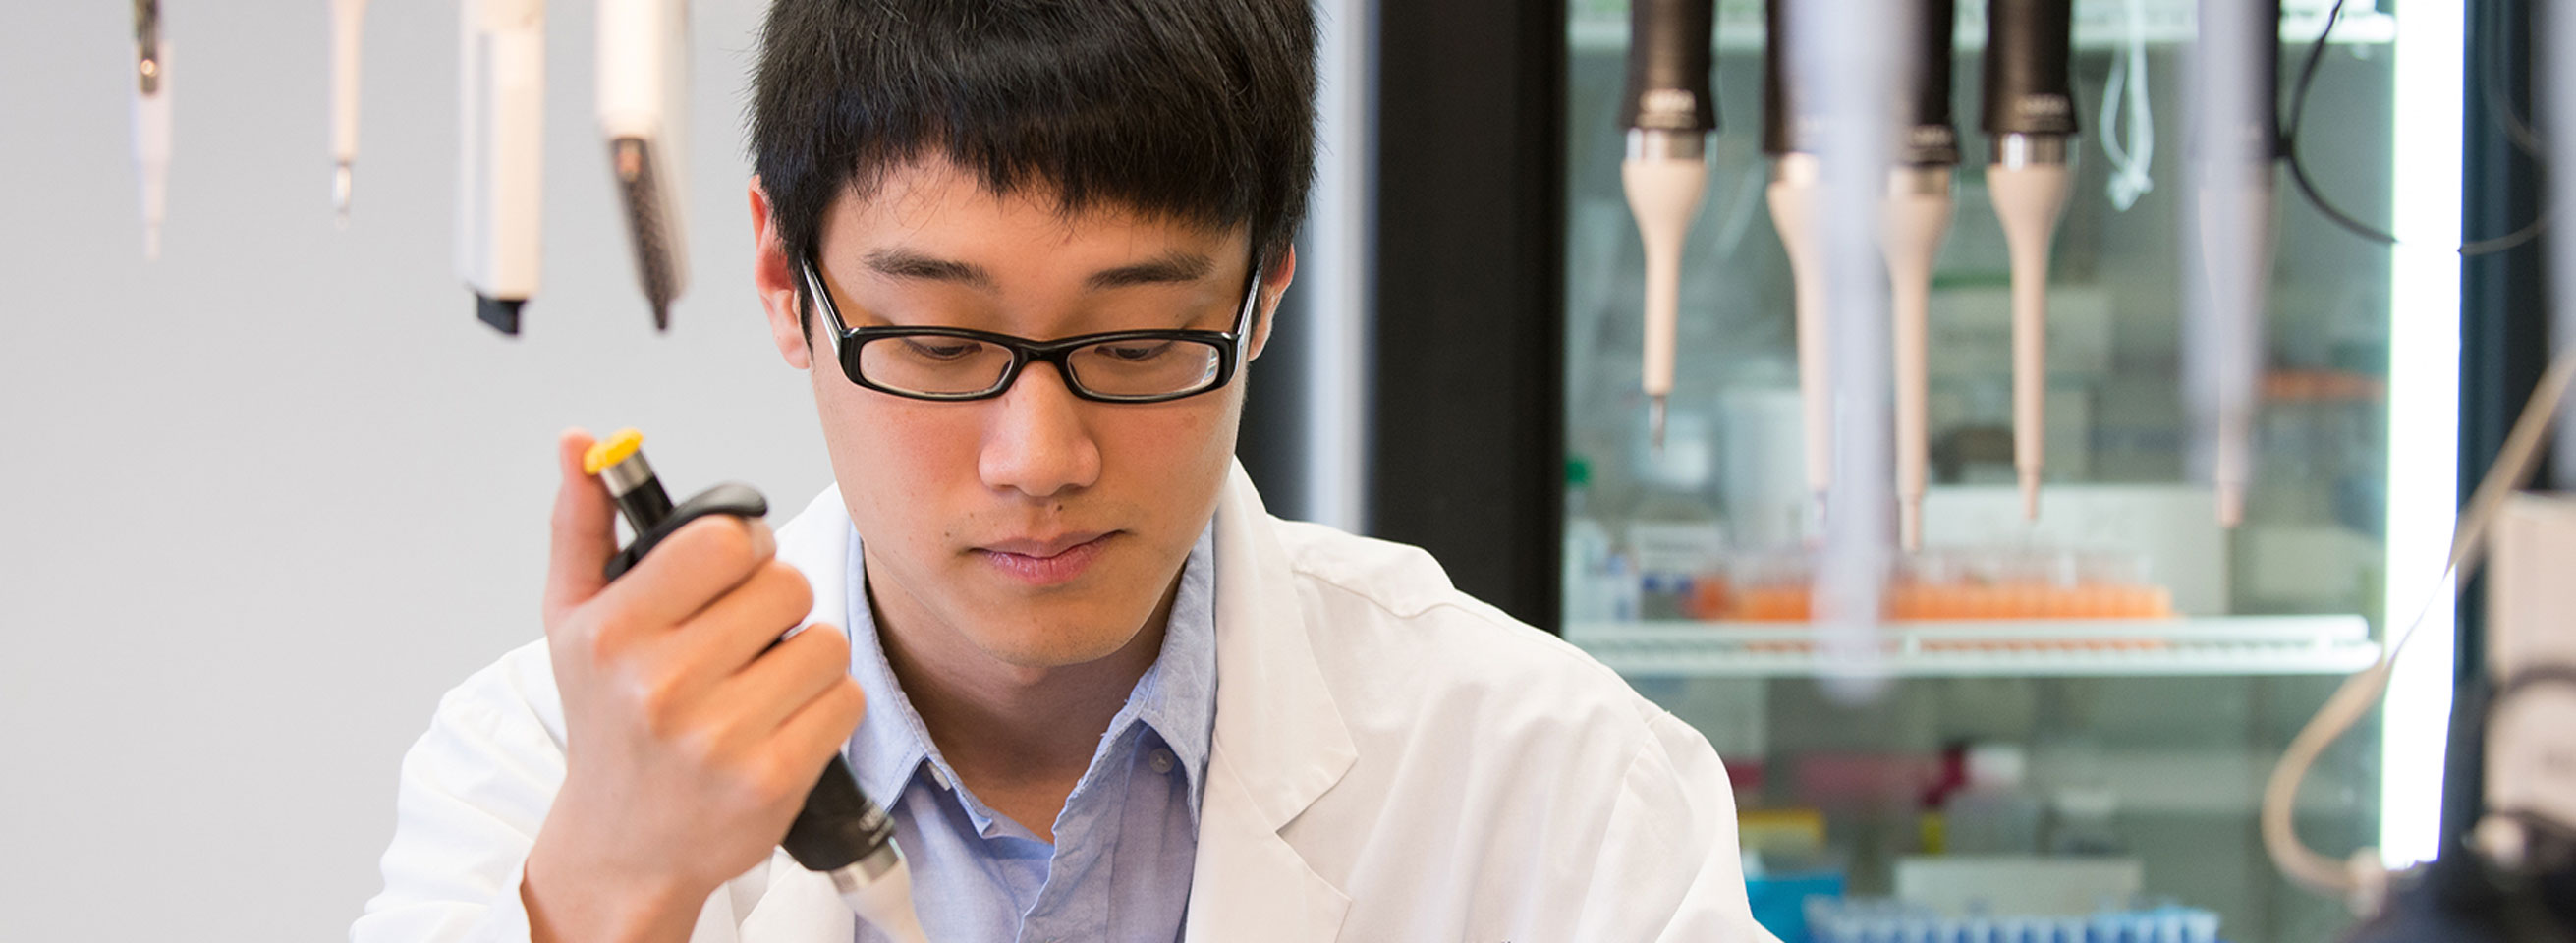 Research student in lab holding a piece of equipment